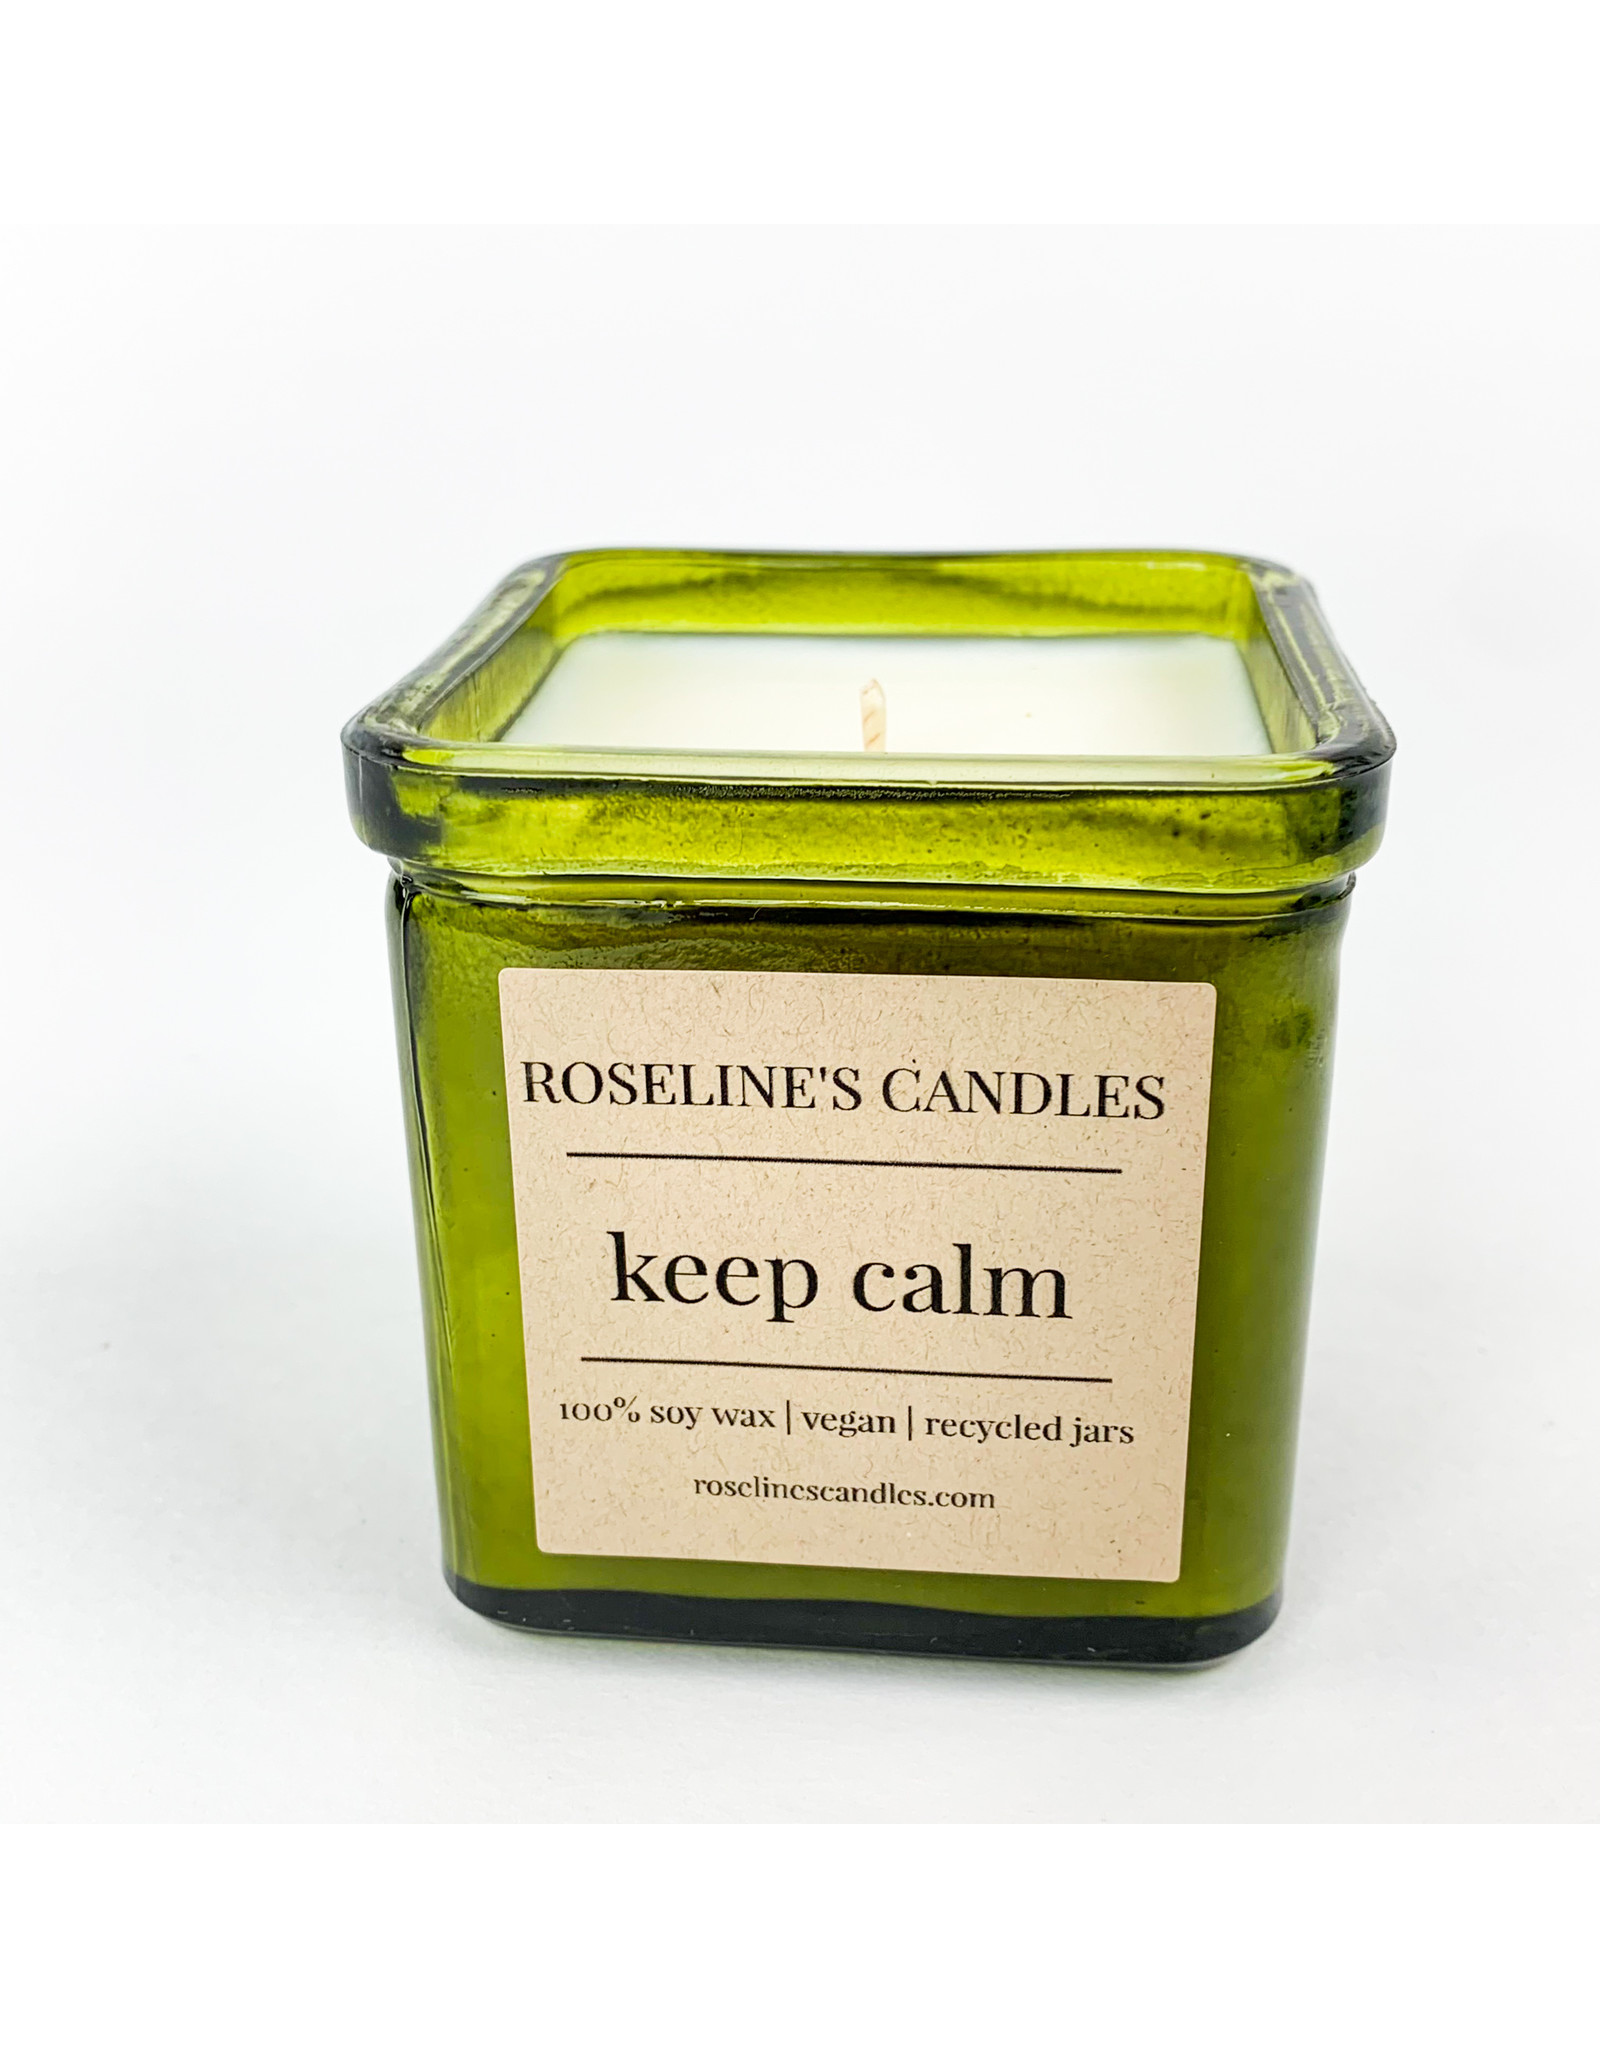 Roseline's Candles Keep Calm Candle